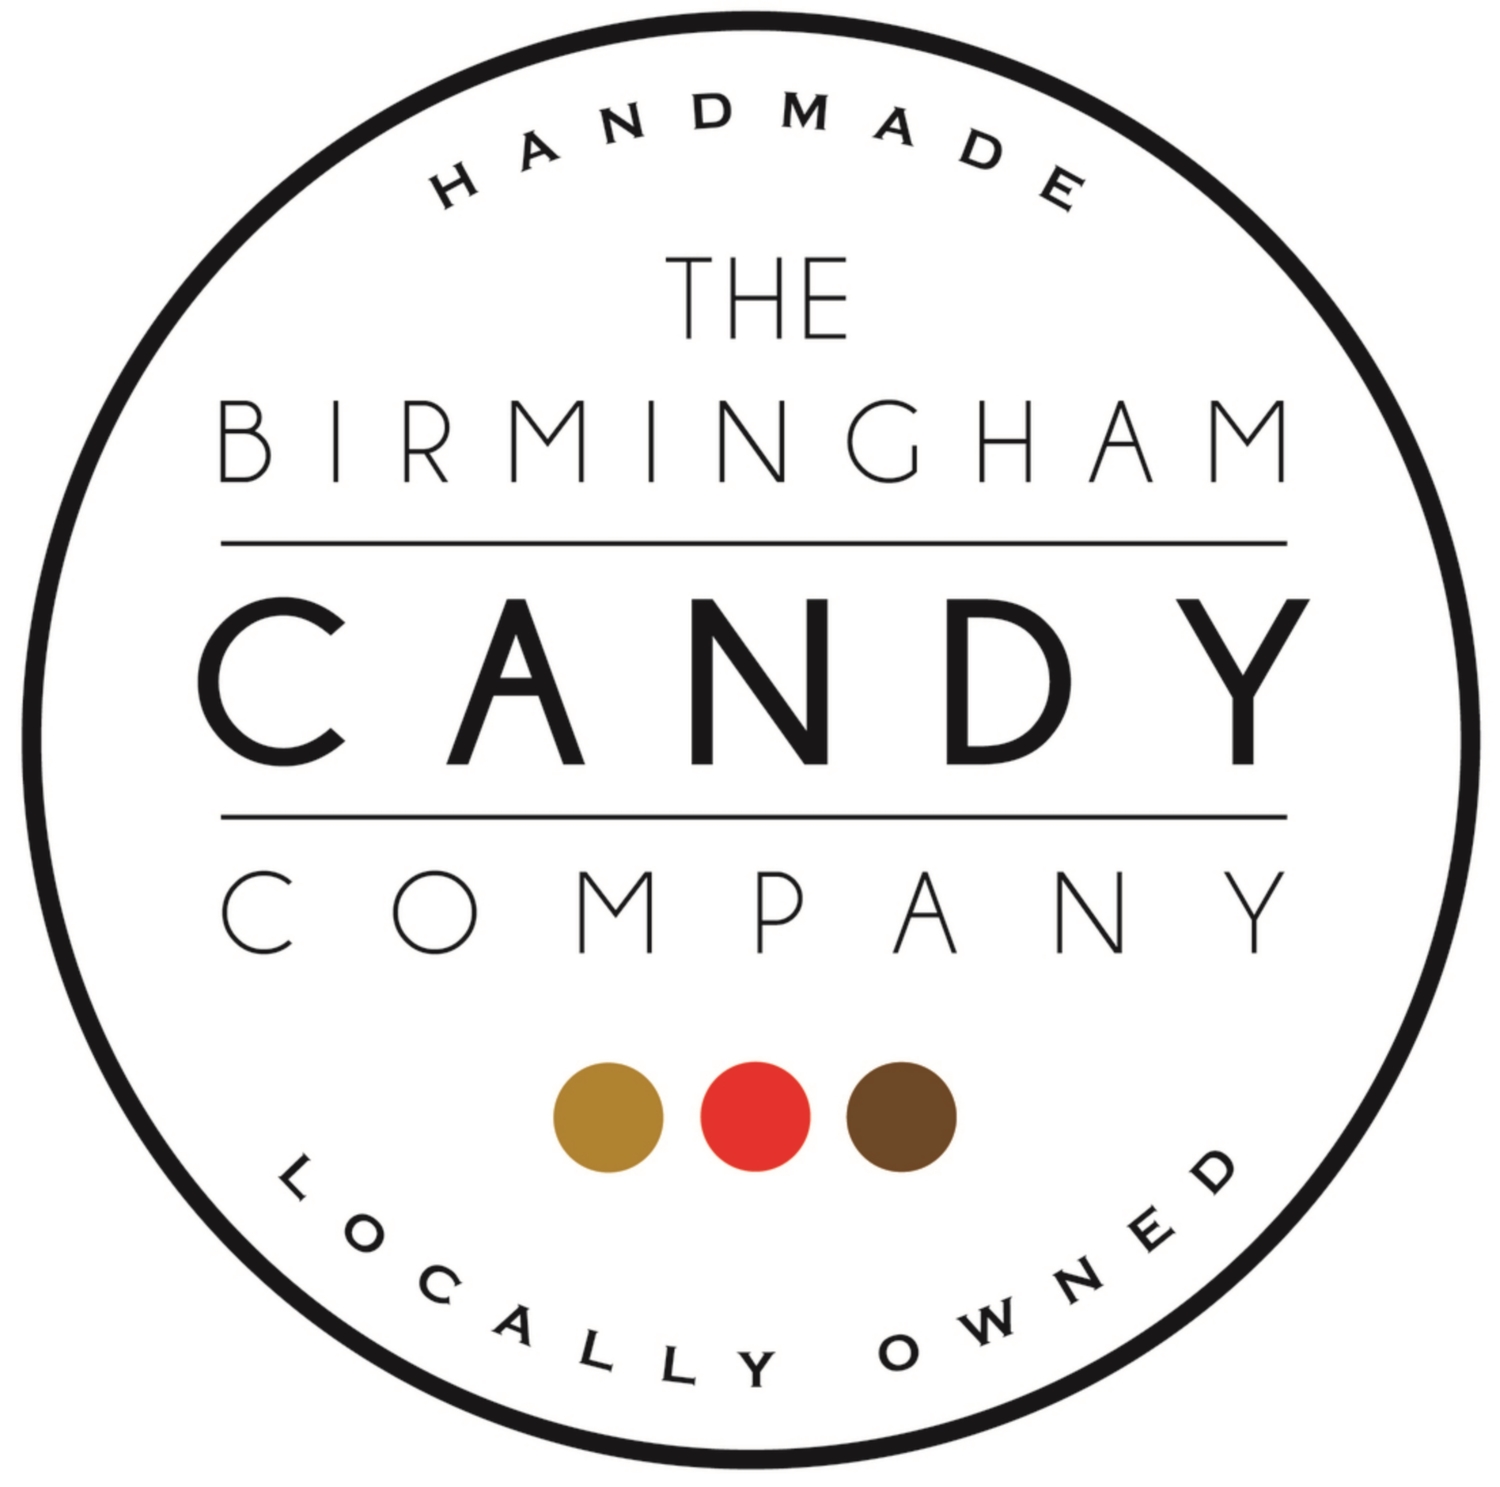 The Birmingham Candy Company